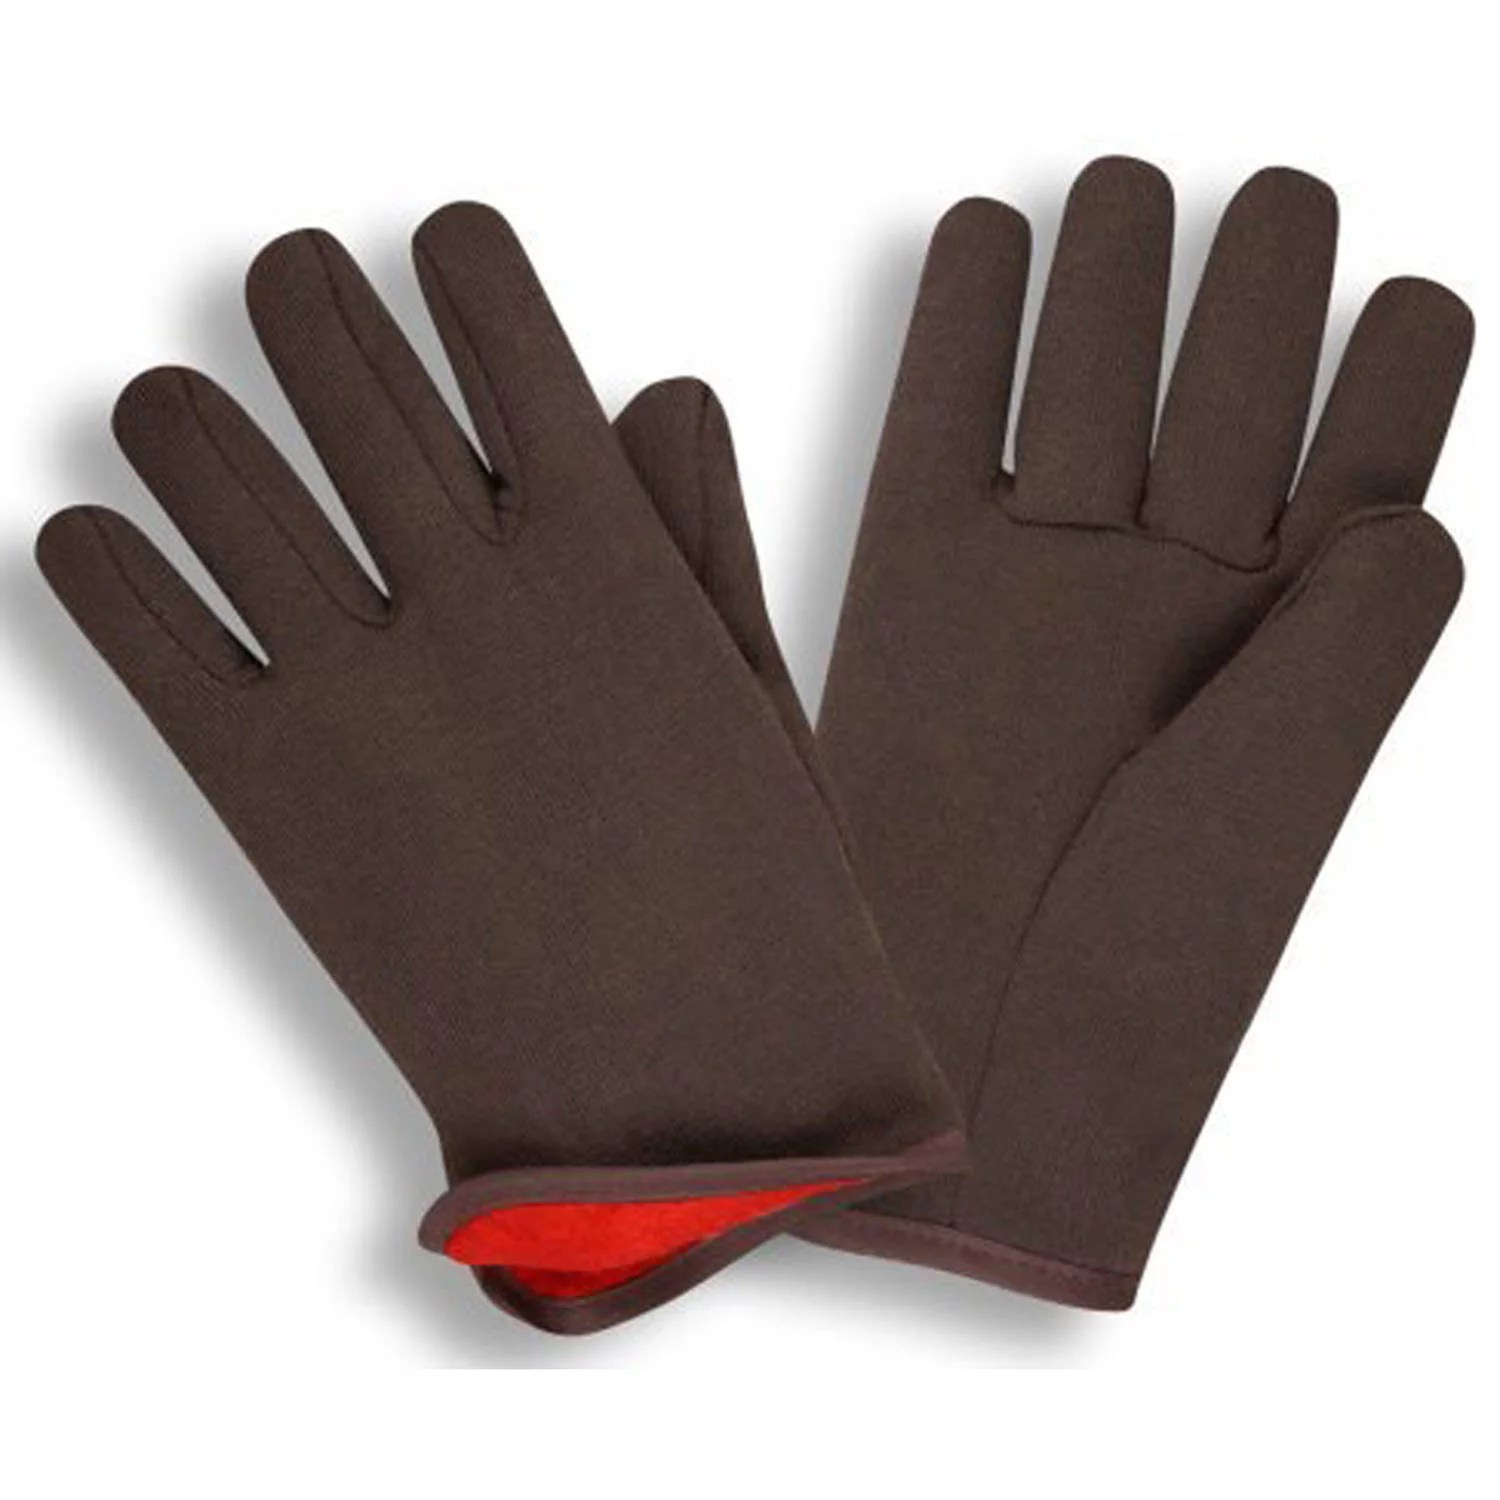 G & F Jersey Winter Gloves, Brown with Red Fleece Lining, Large, 12 Pairs